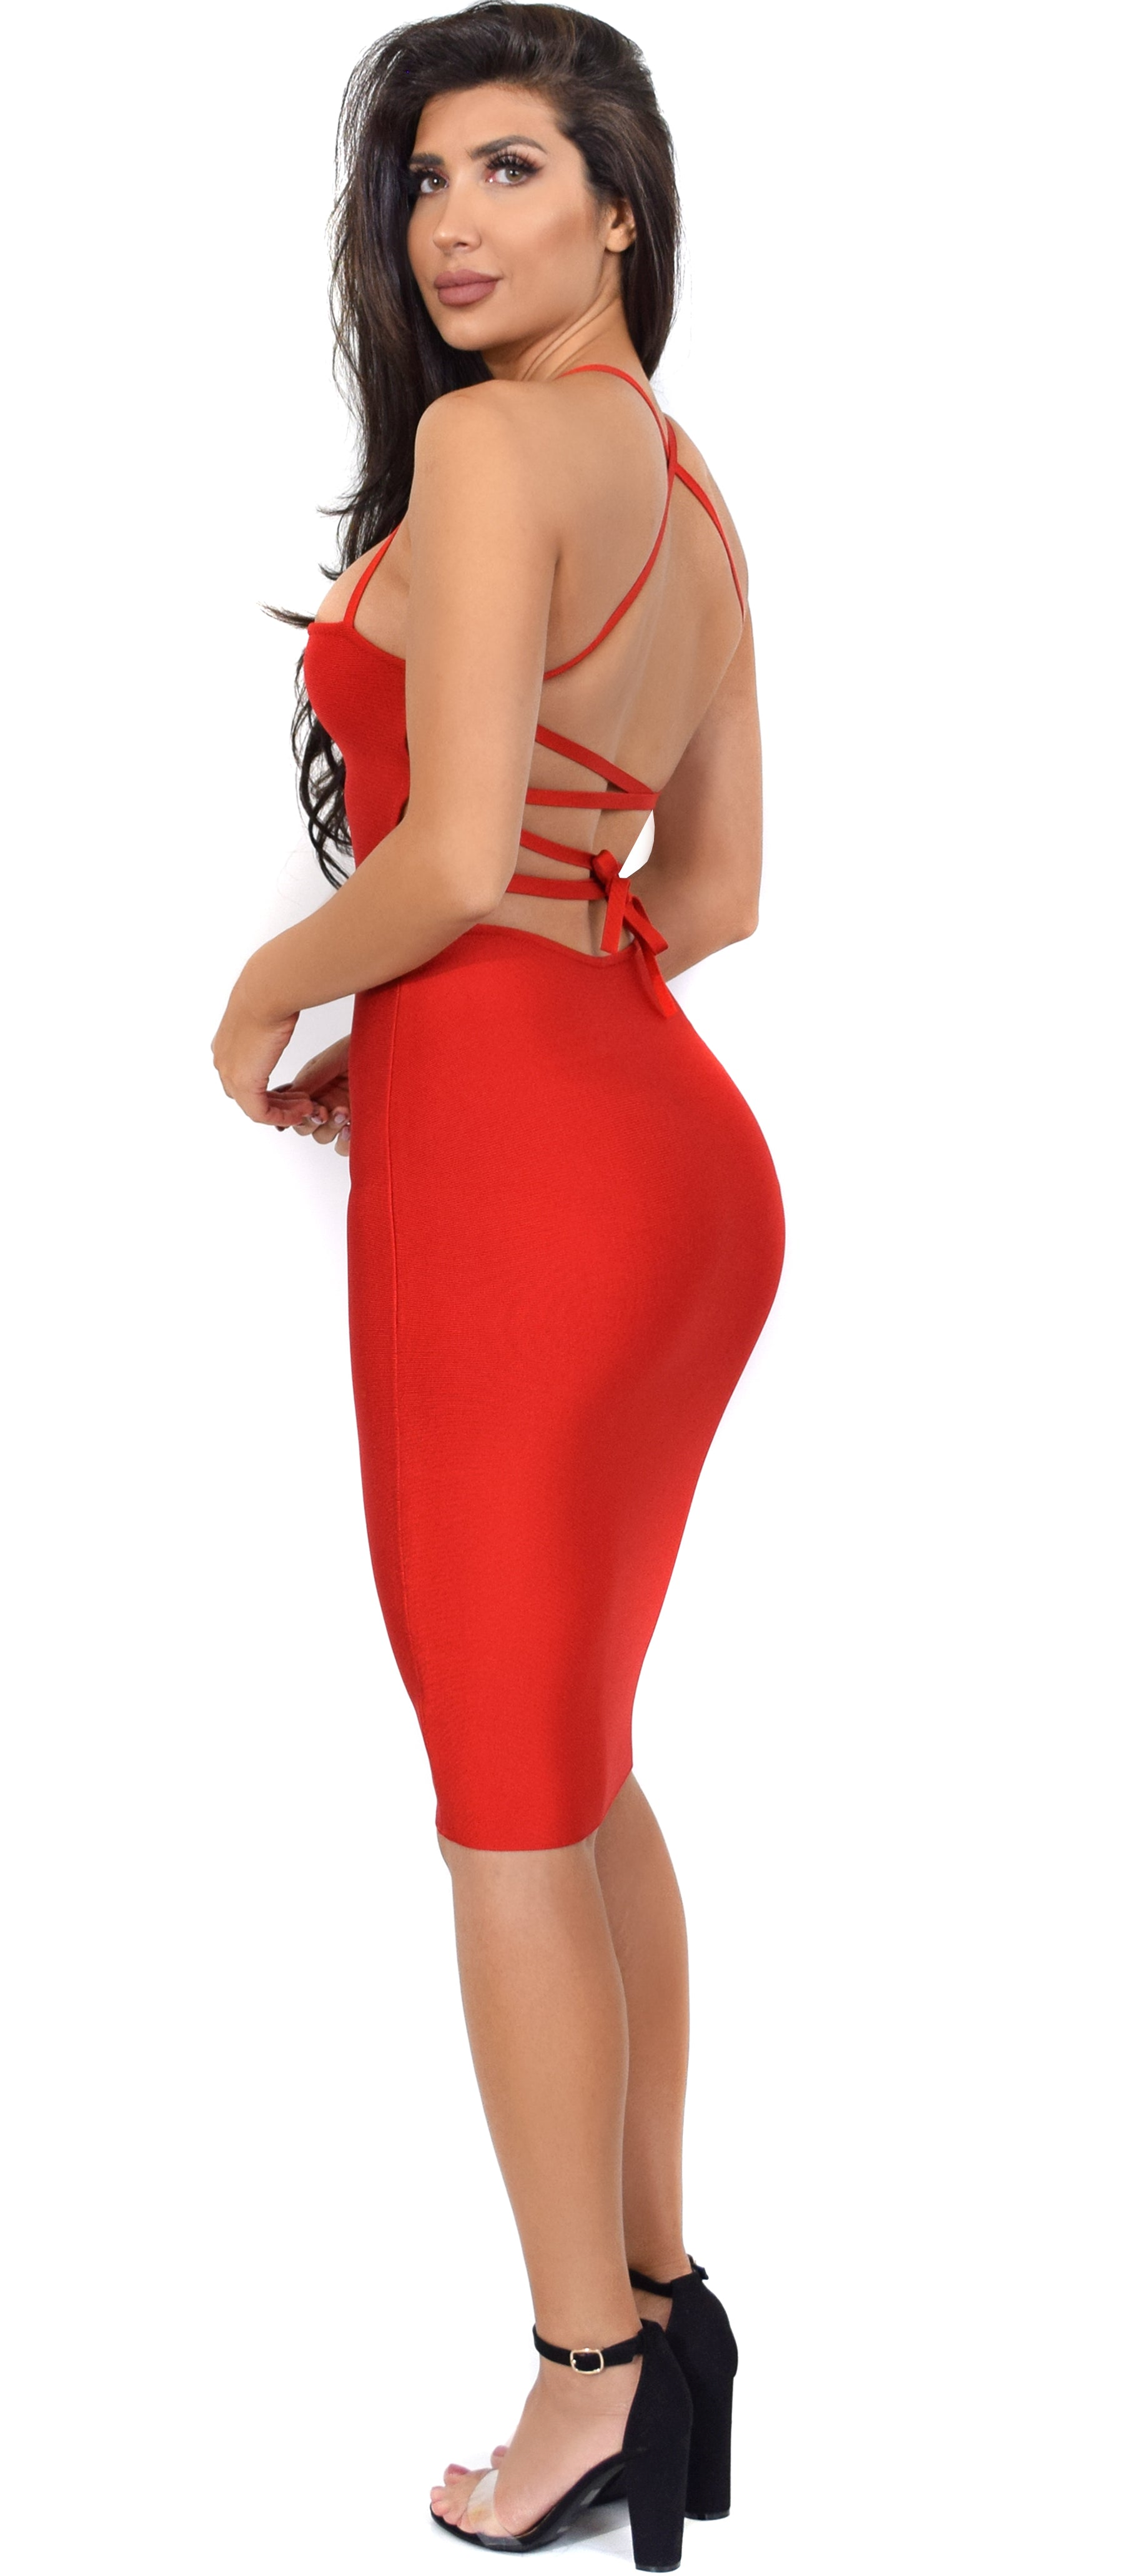 Maybelle Red Cross Back Bandage Dress - Emprada